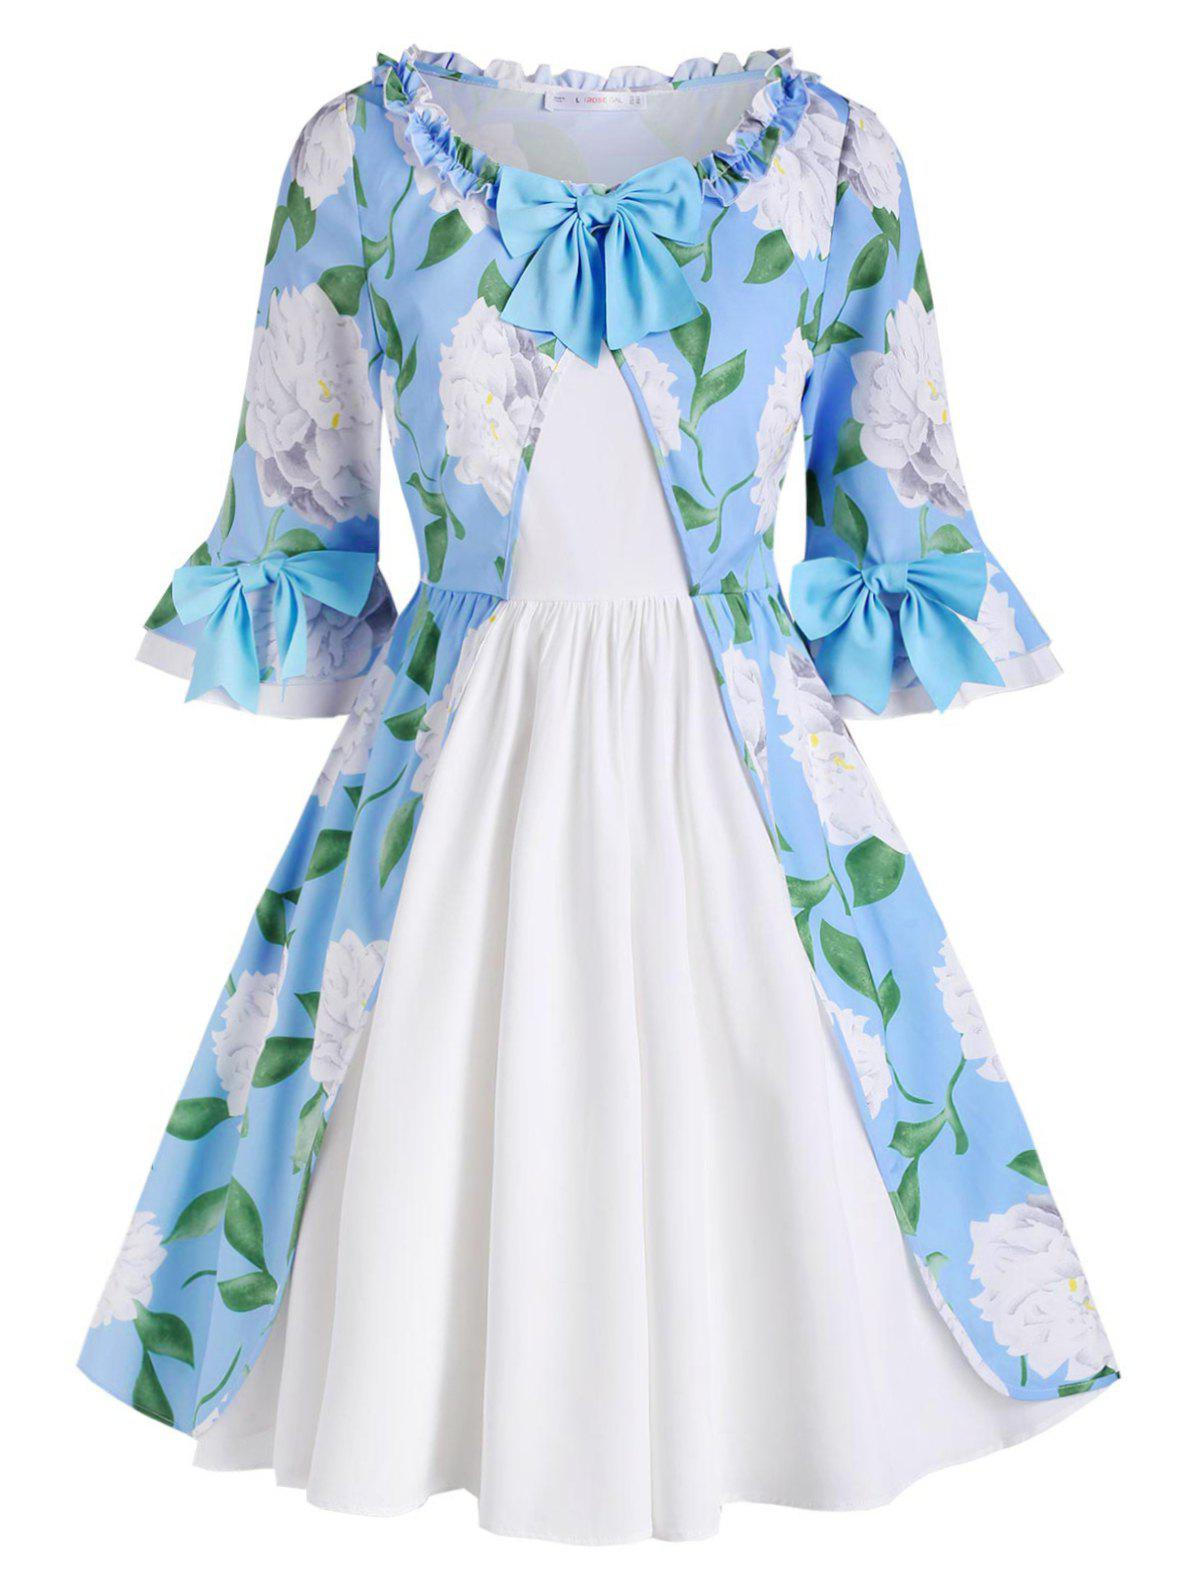 Frilled Trim Floral Bowknot Plus Size Dress фото